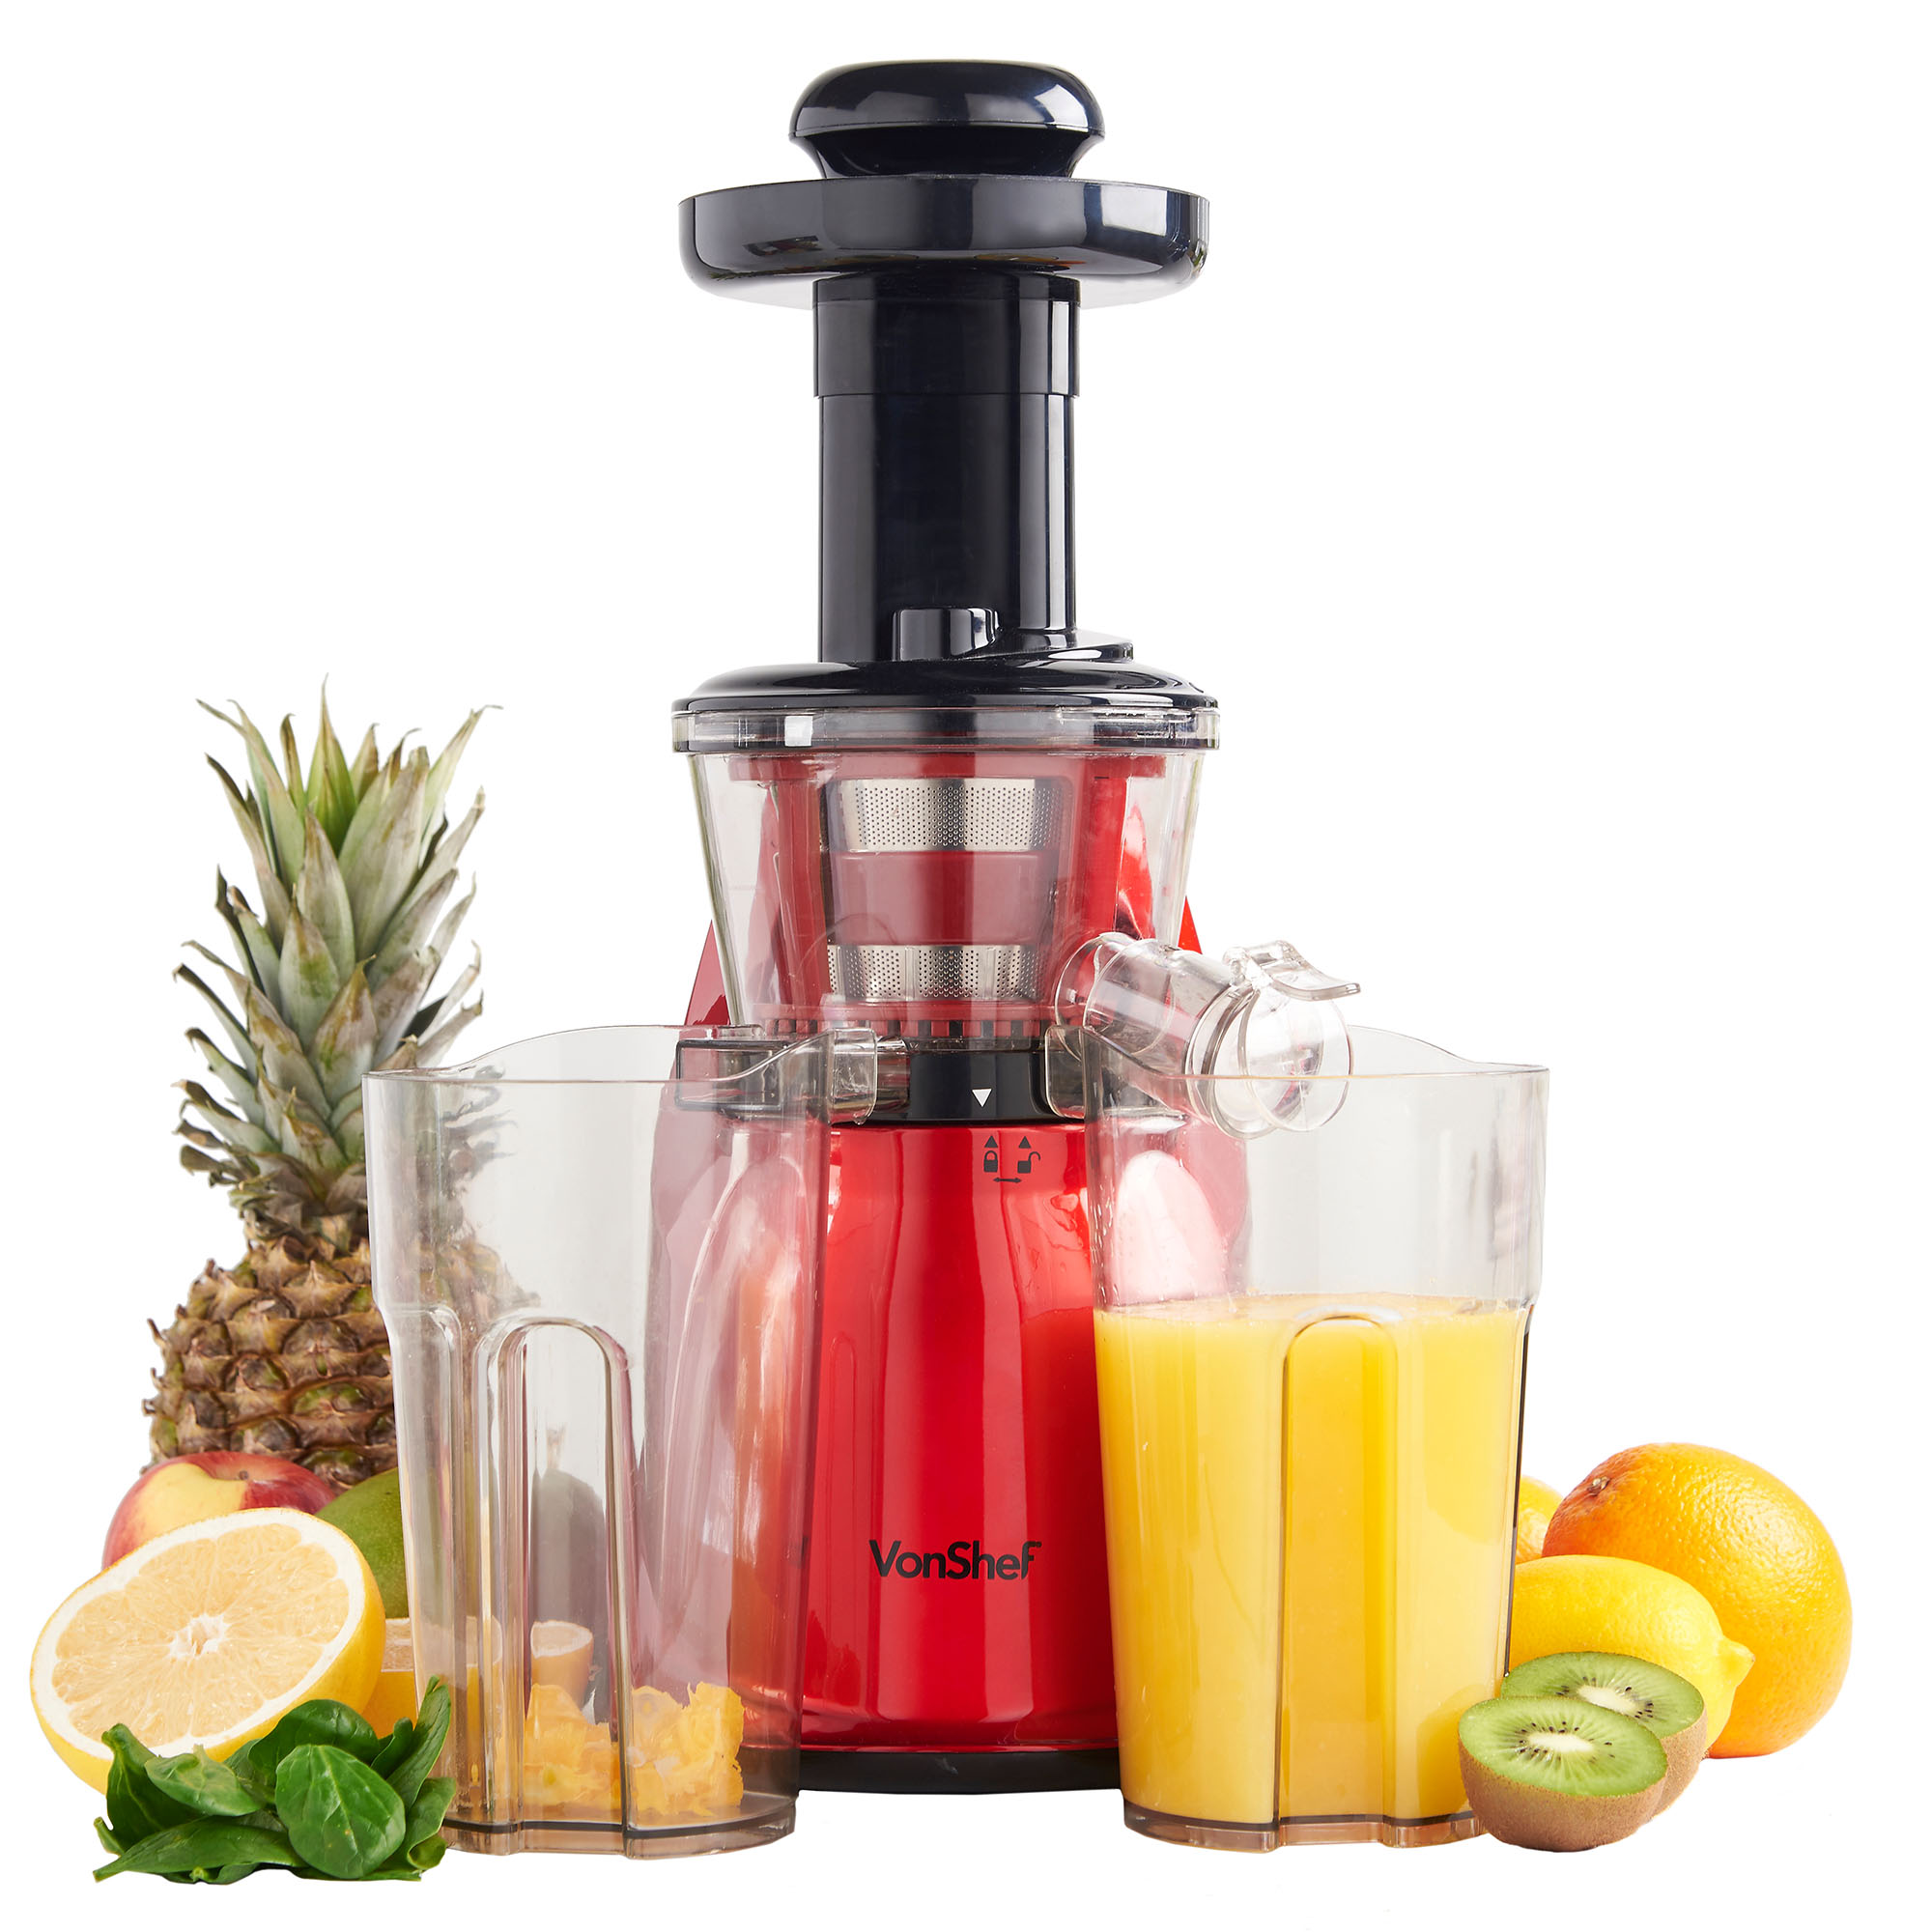 Vonshef Slow Juicer Review : vonShef Premium Slow Masticating Juicer Electric vegetable Juice Extractor - Red eBay